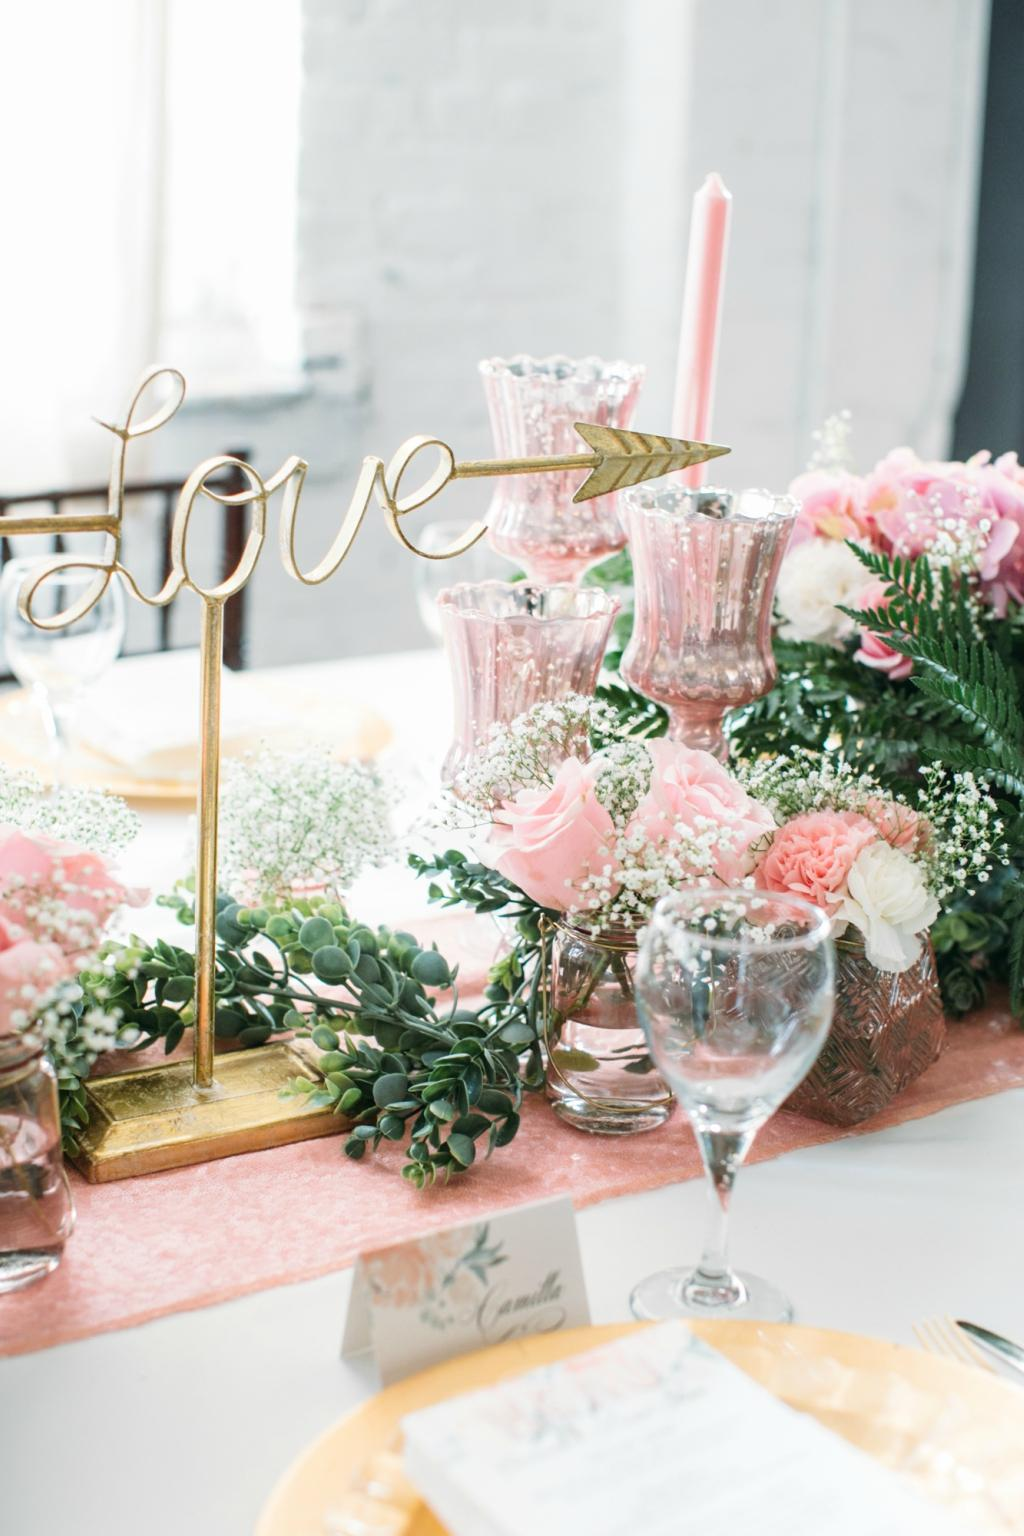 Four Unique Wedding Ideas For Every Bride And Groom Philly In Love